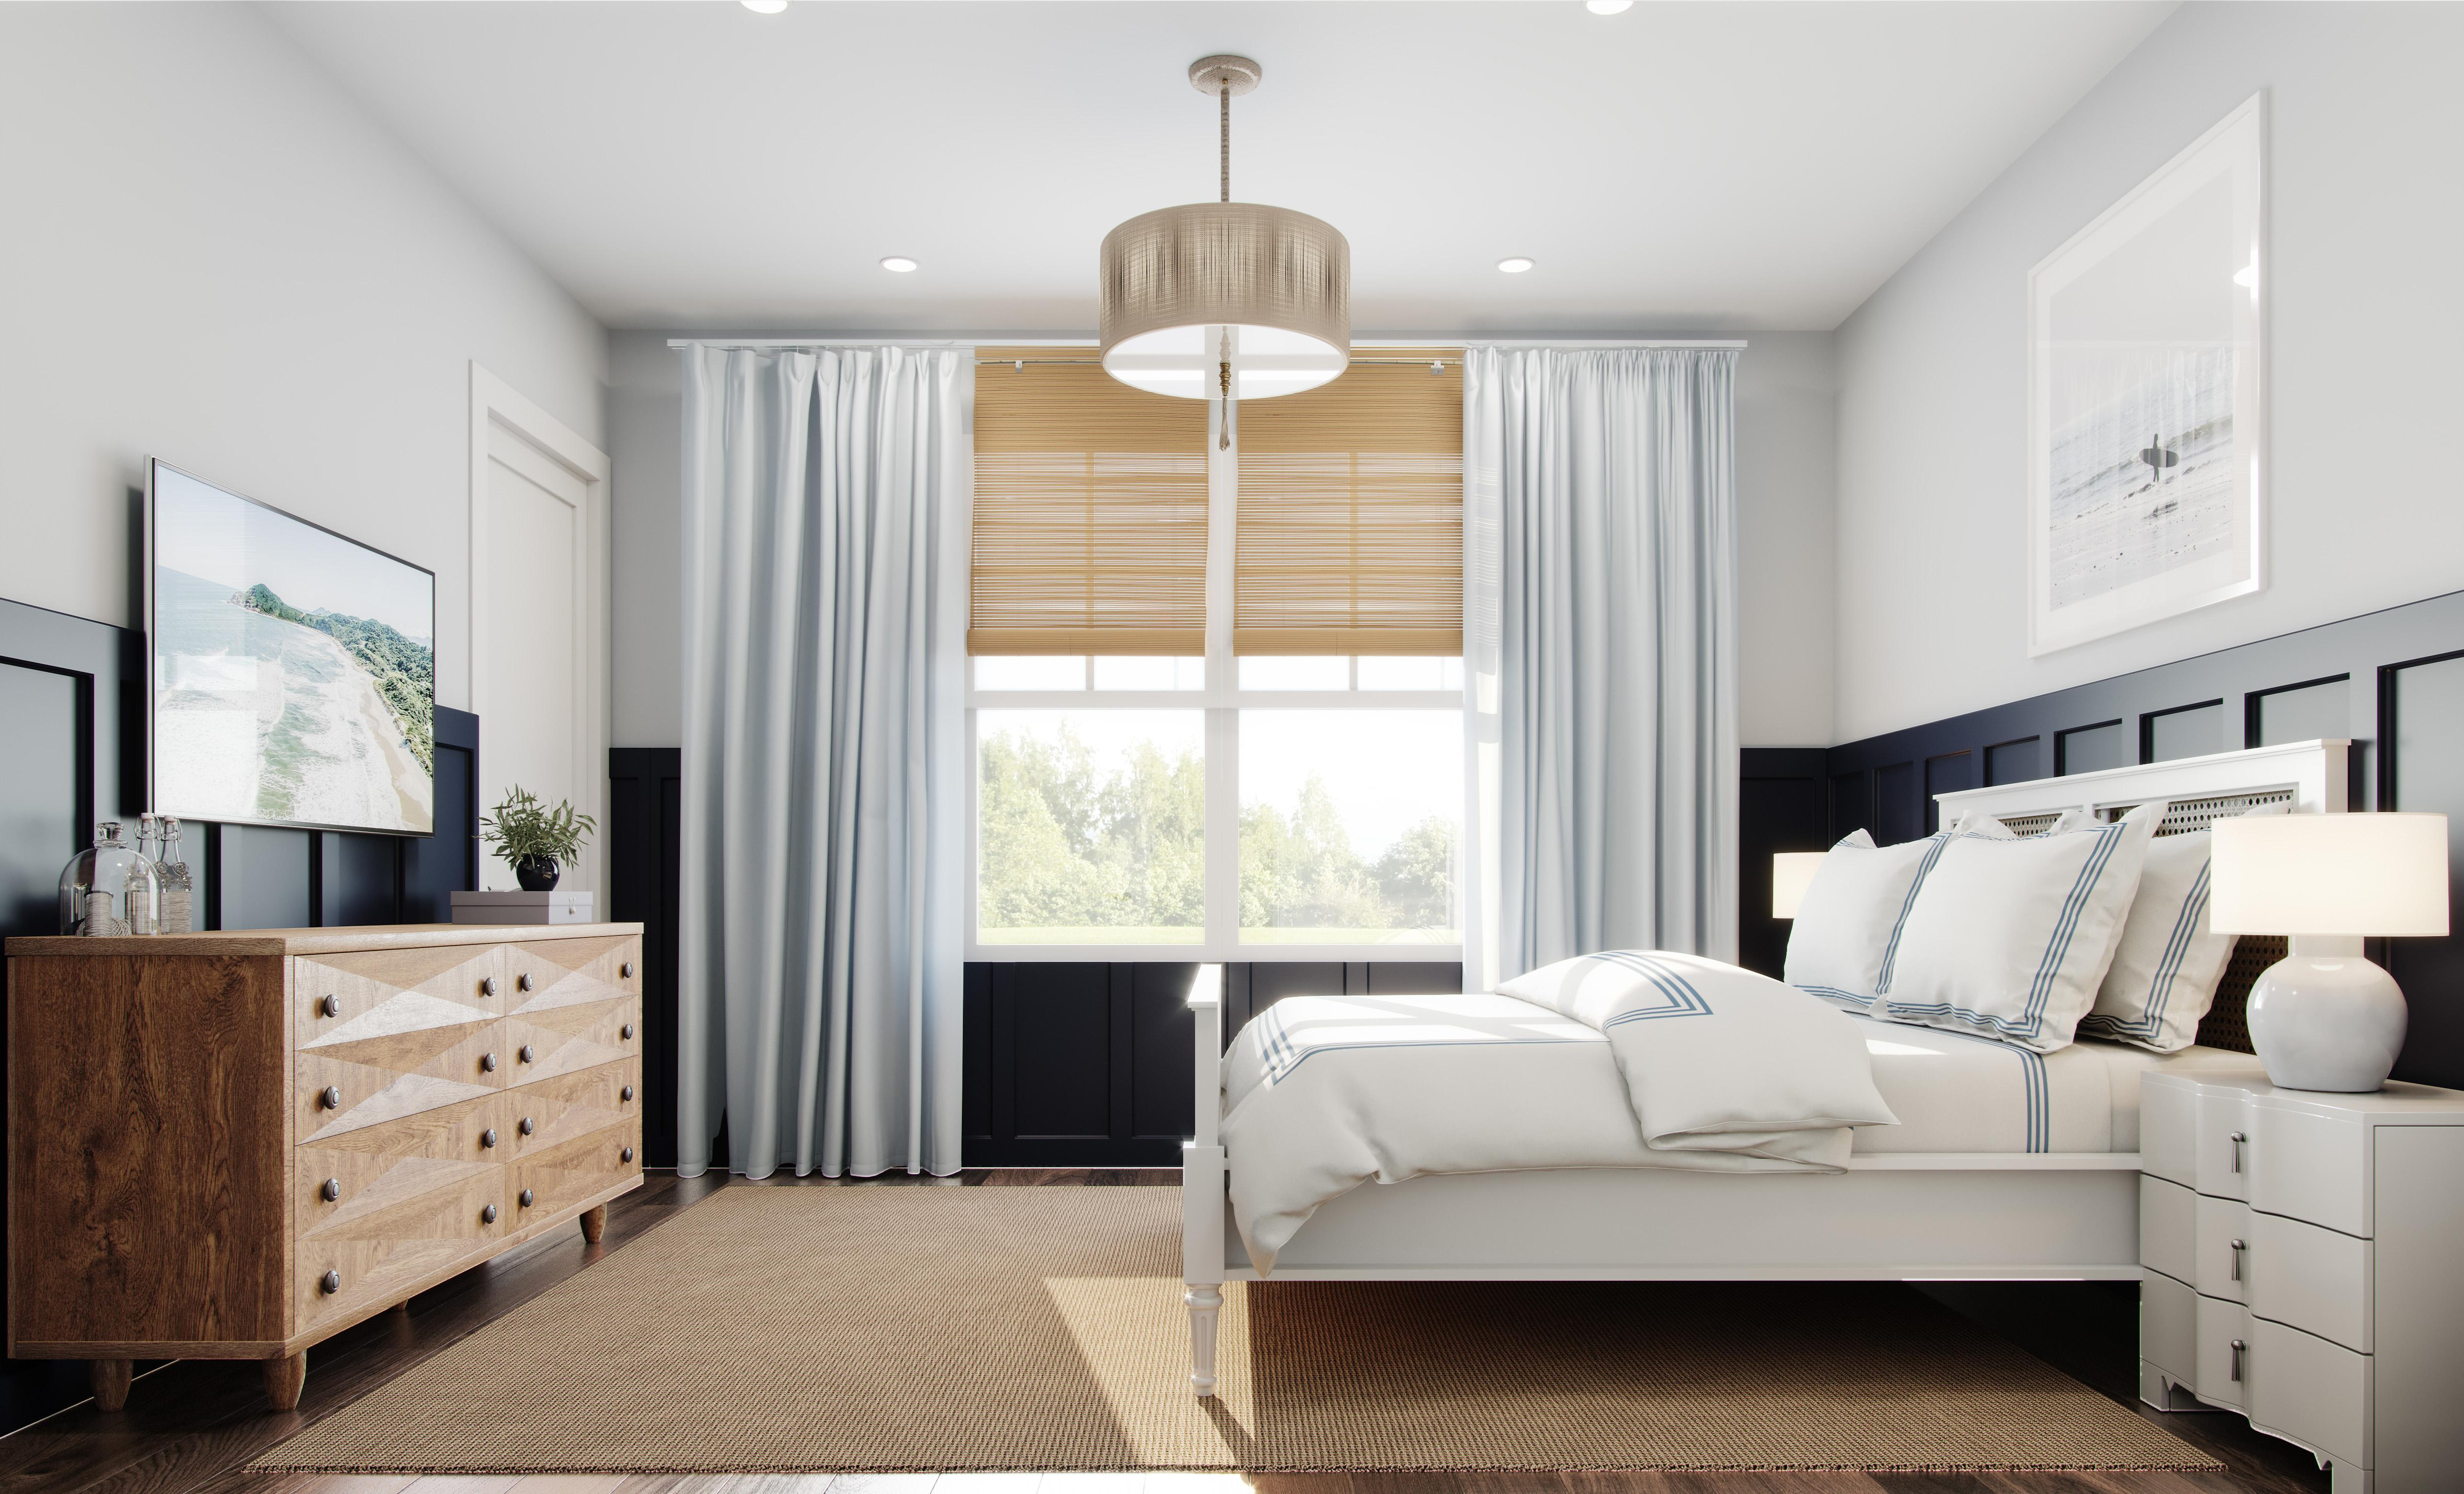 Bedroom featured in The Boxwood By Beechwood Homes in Nassau-Suffolk, NY